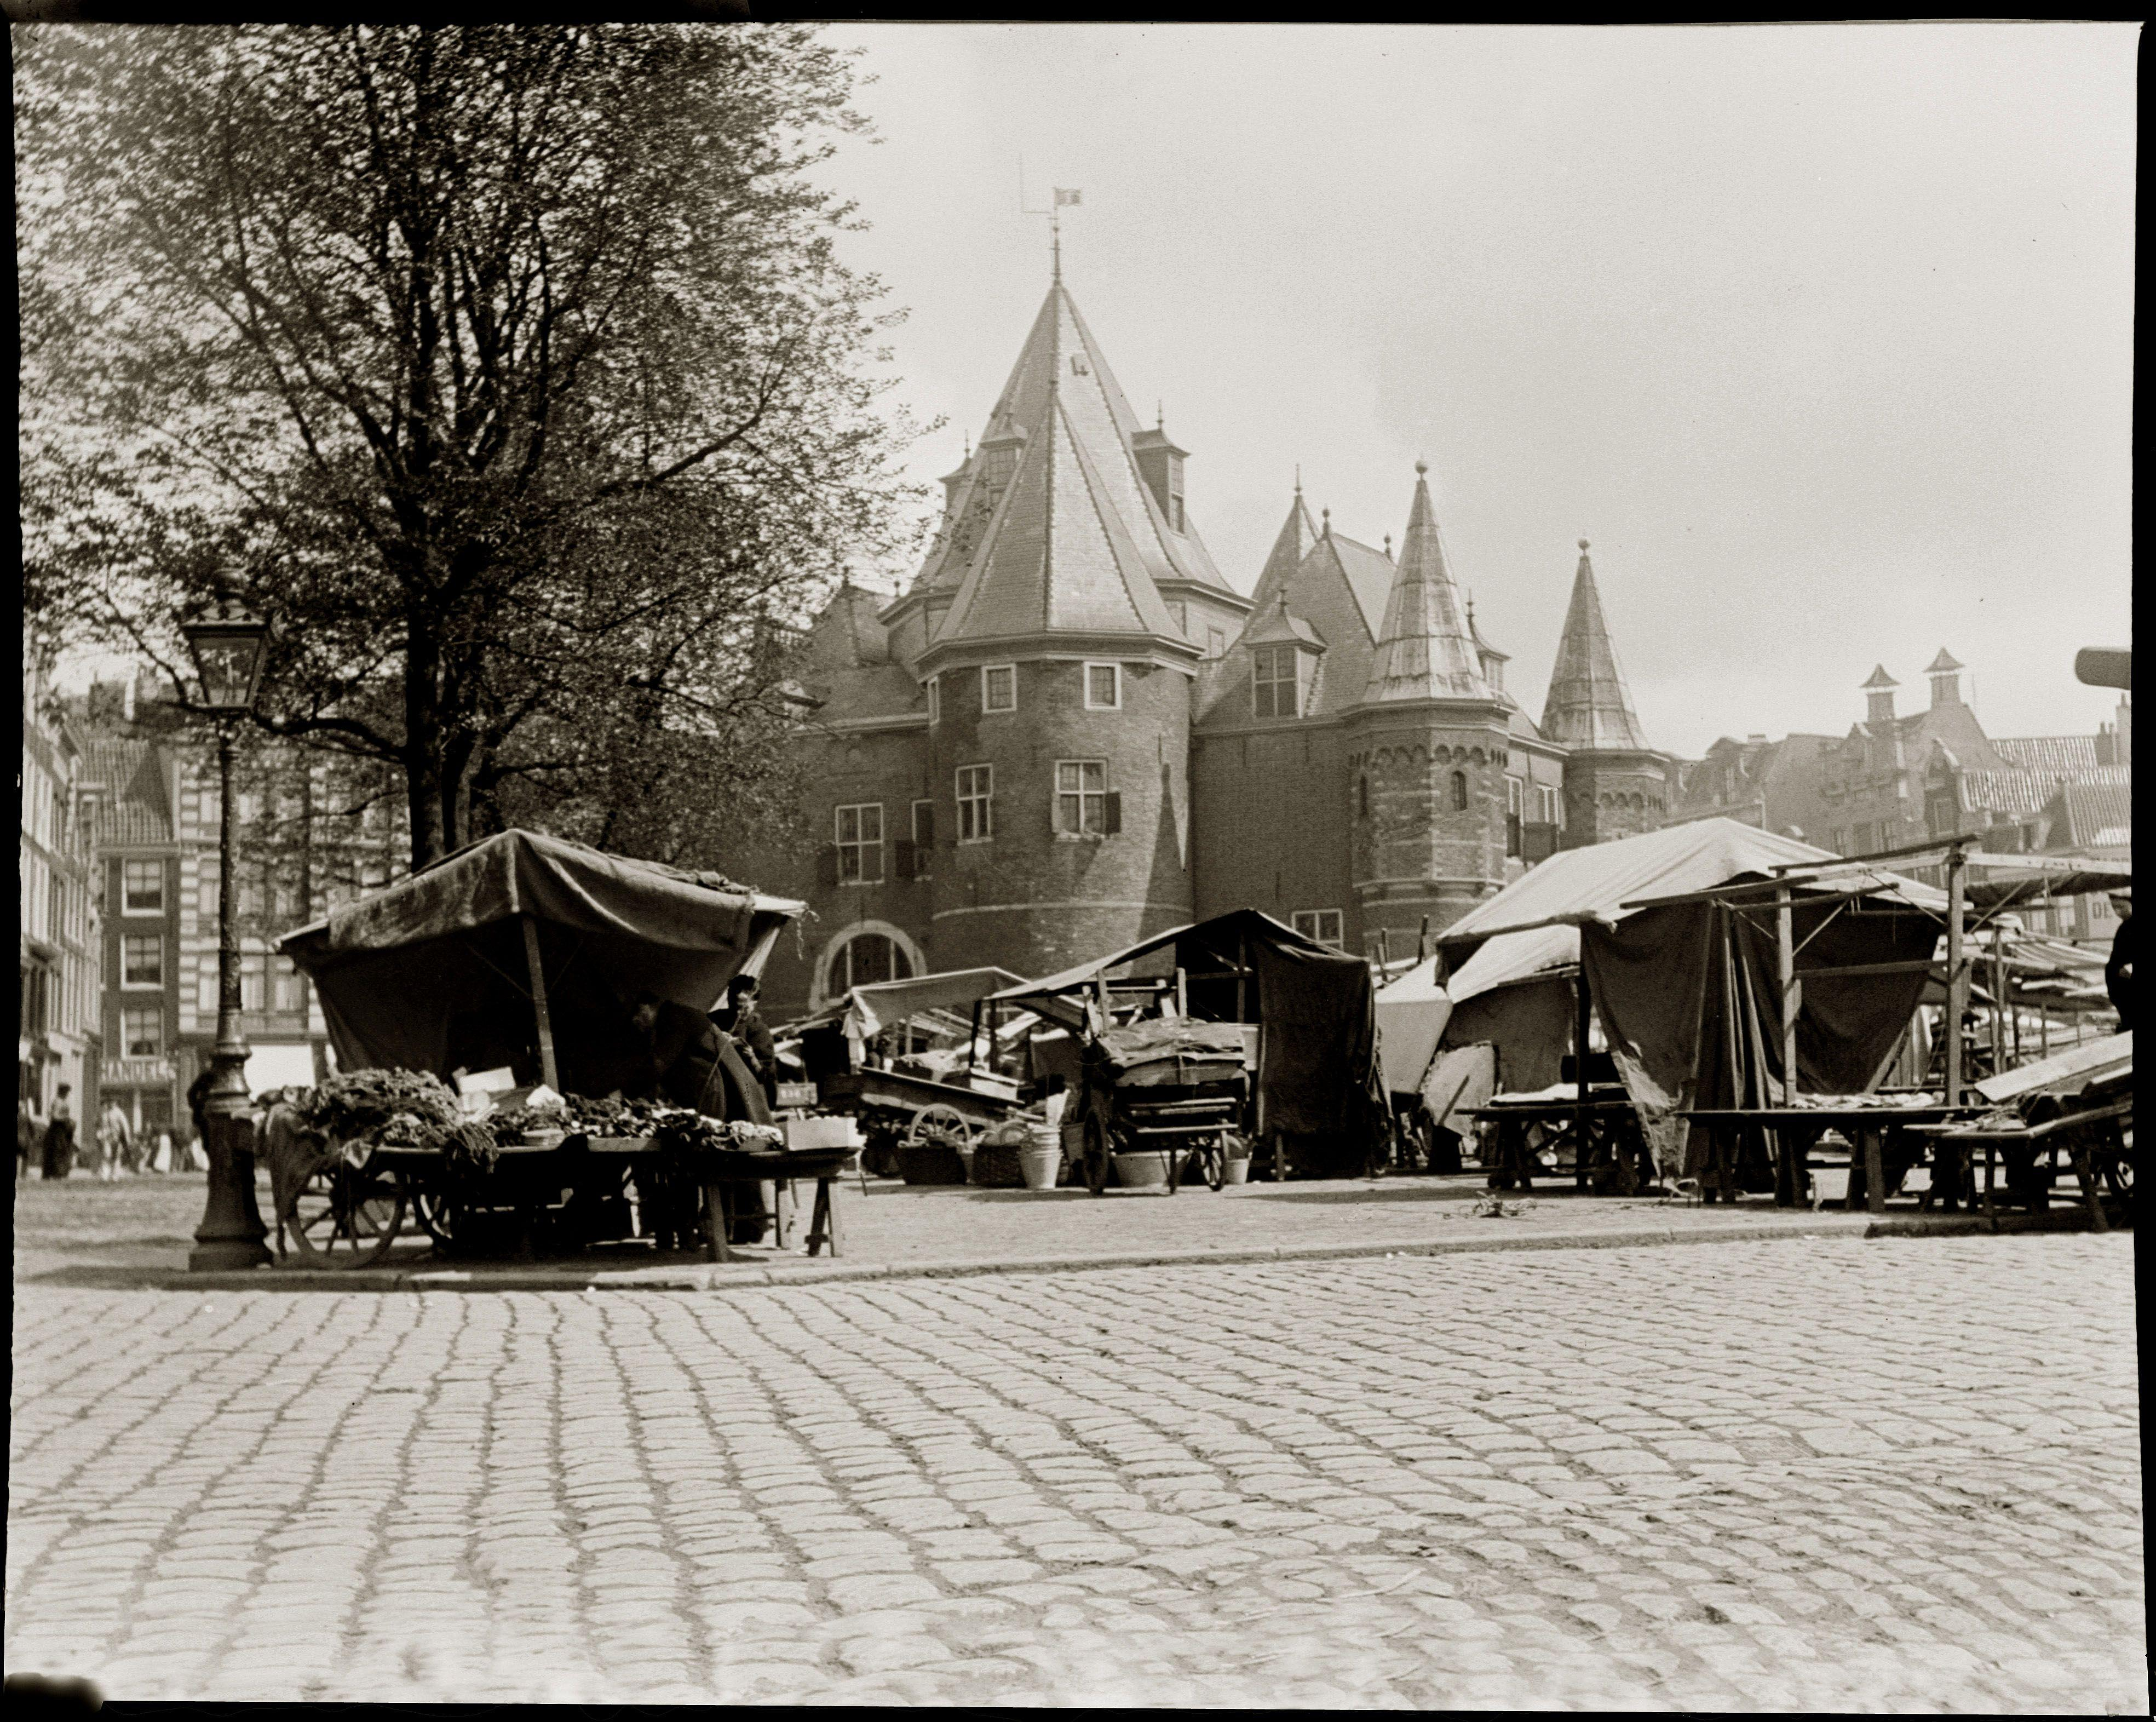 File:Jacob Olie - Nieuwmarkt Amsterdam september 1902.jpeg